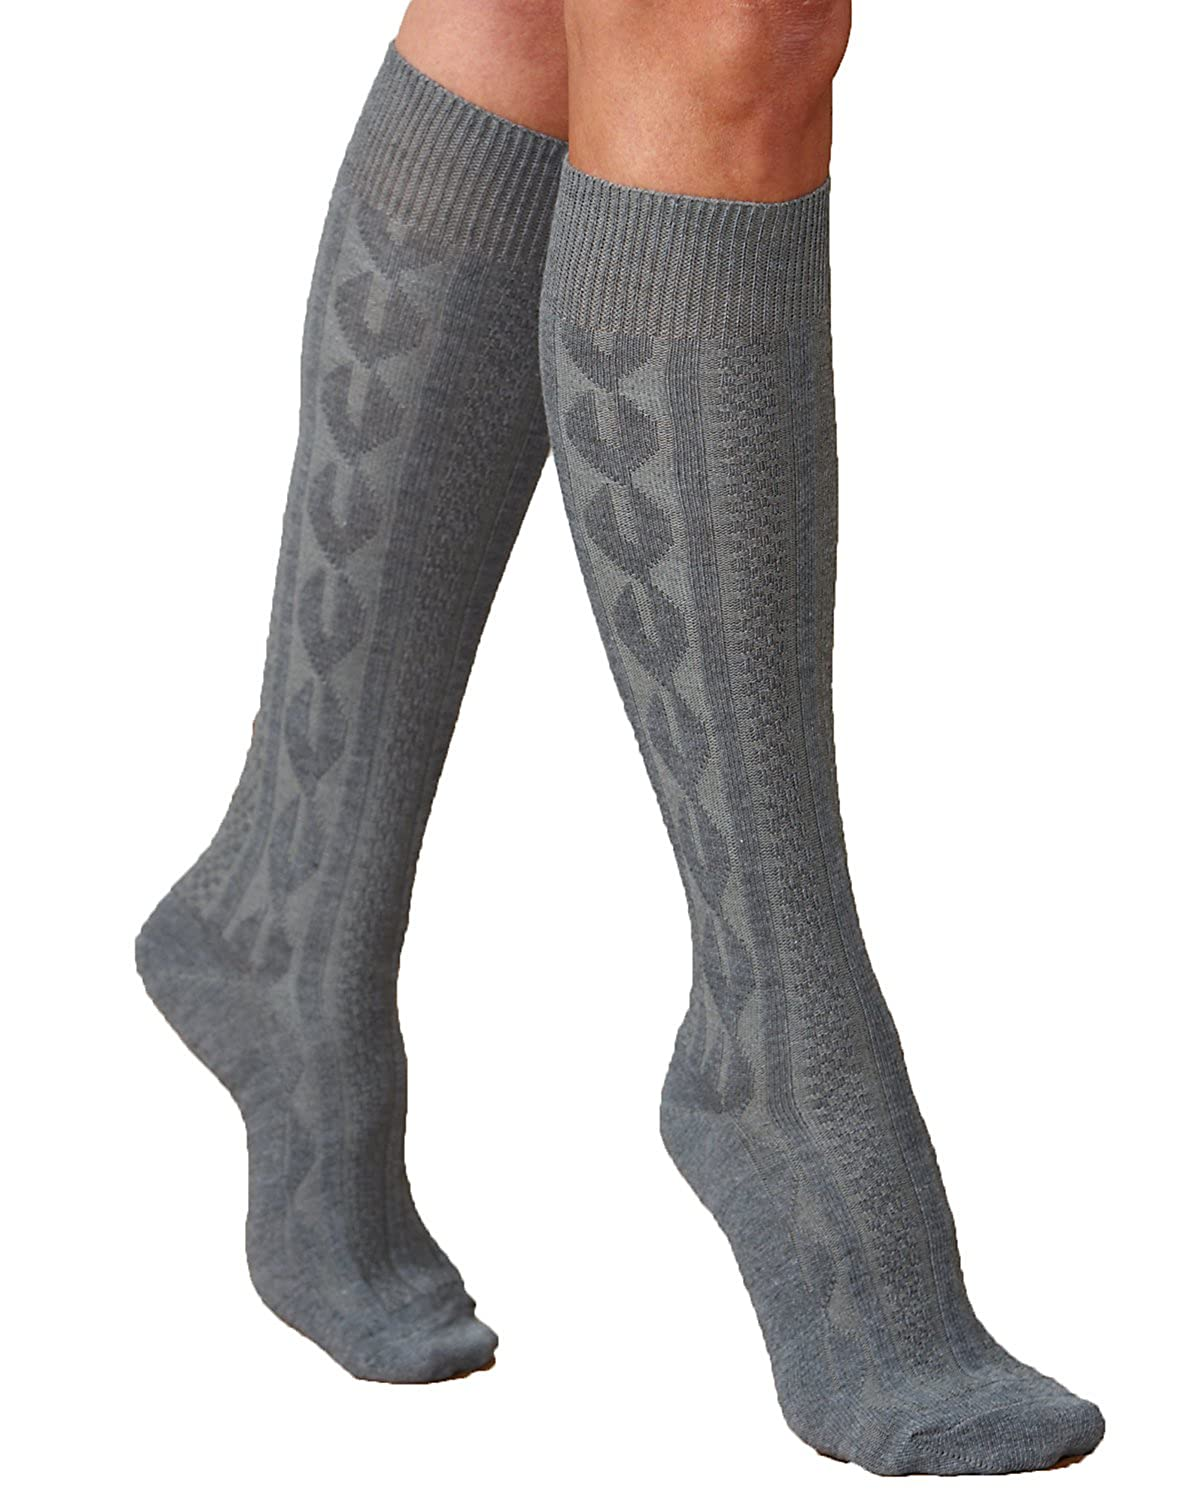 Knitting Pattern Knee High Socks : Cable Knit Socks Knee High images